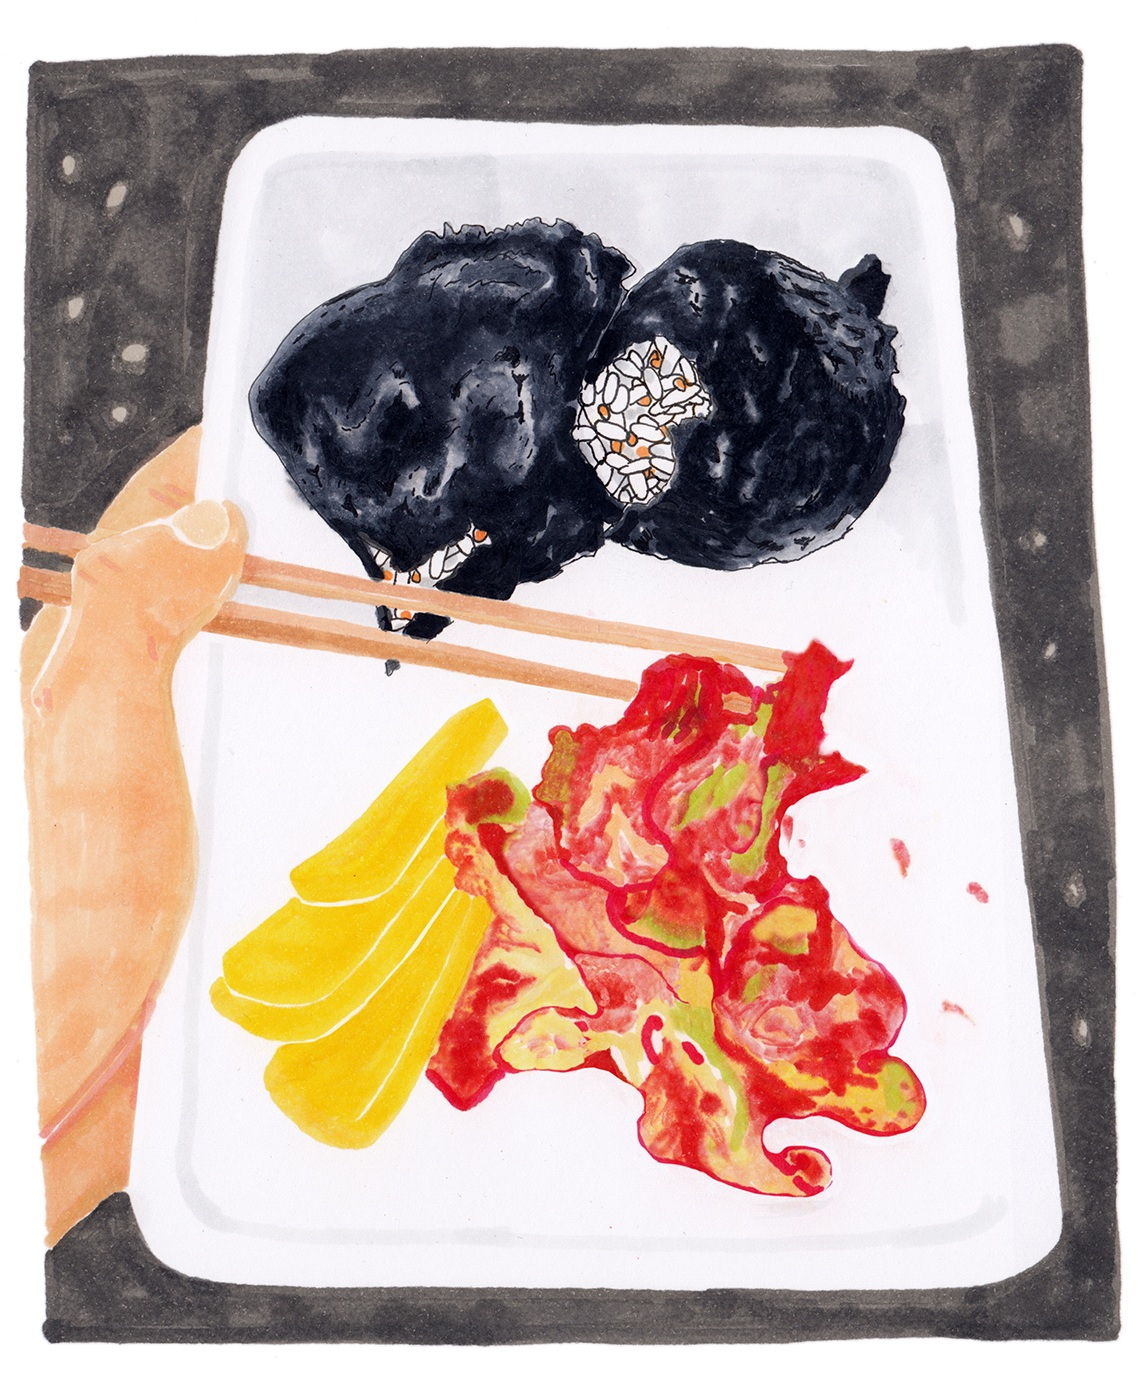 A lunch of rice balls, kimchi and sweet danmuji radish that Hannah ate at Gwangju's May 18 National Cemetery last year. (Drawing by Adam Oelsner)